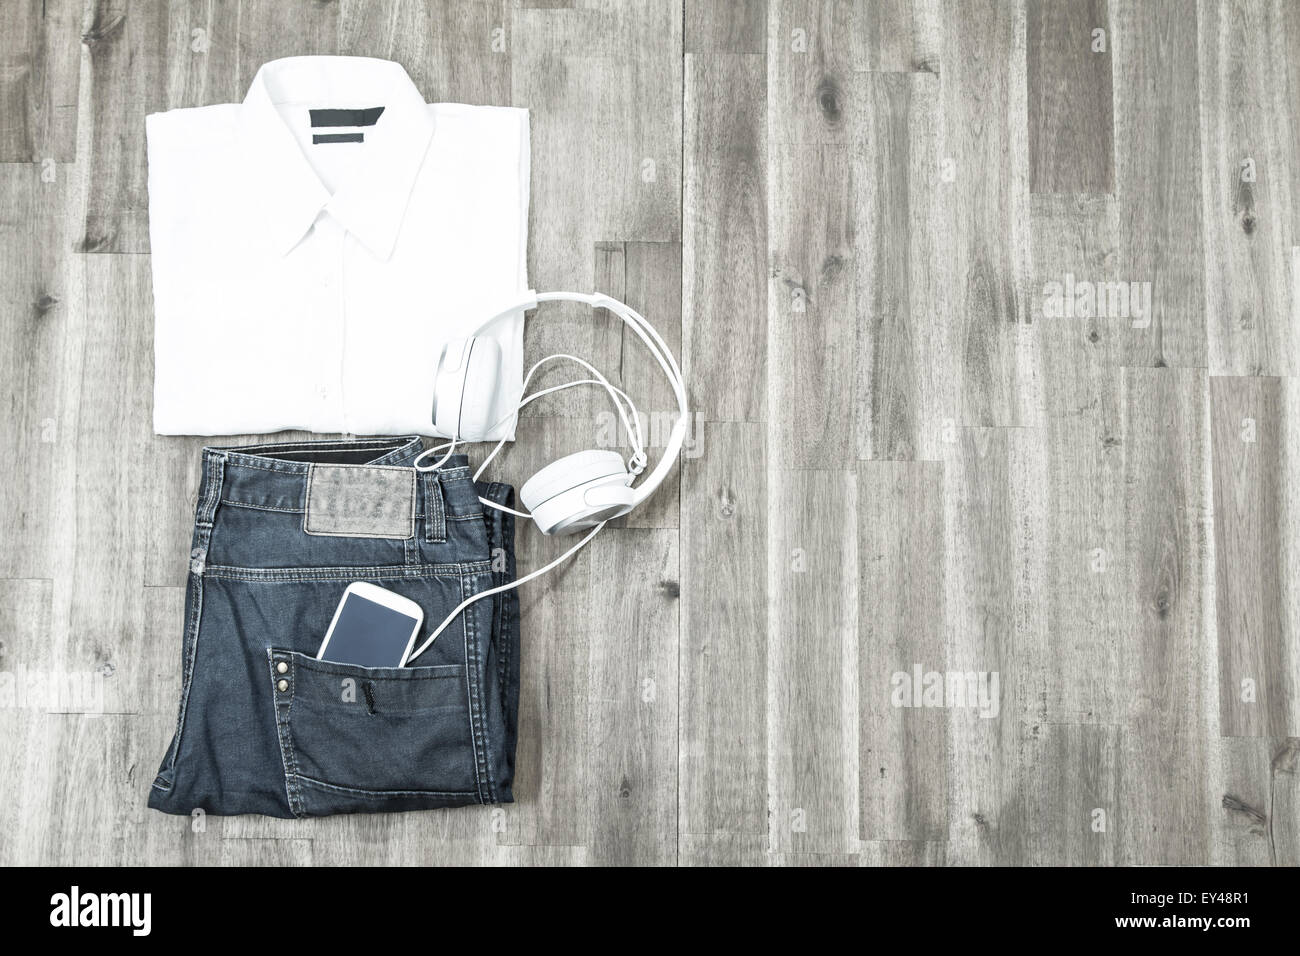 Informal male outfit with cellphone and headphone, background - Stock Image